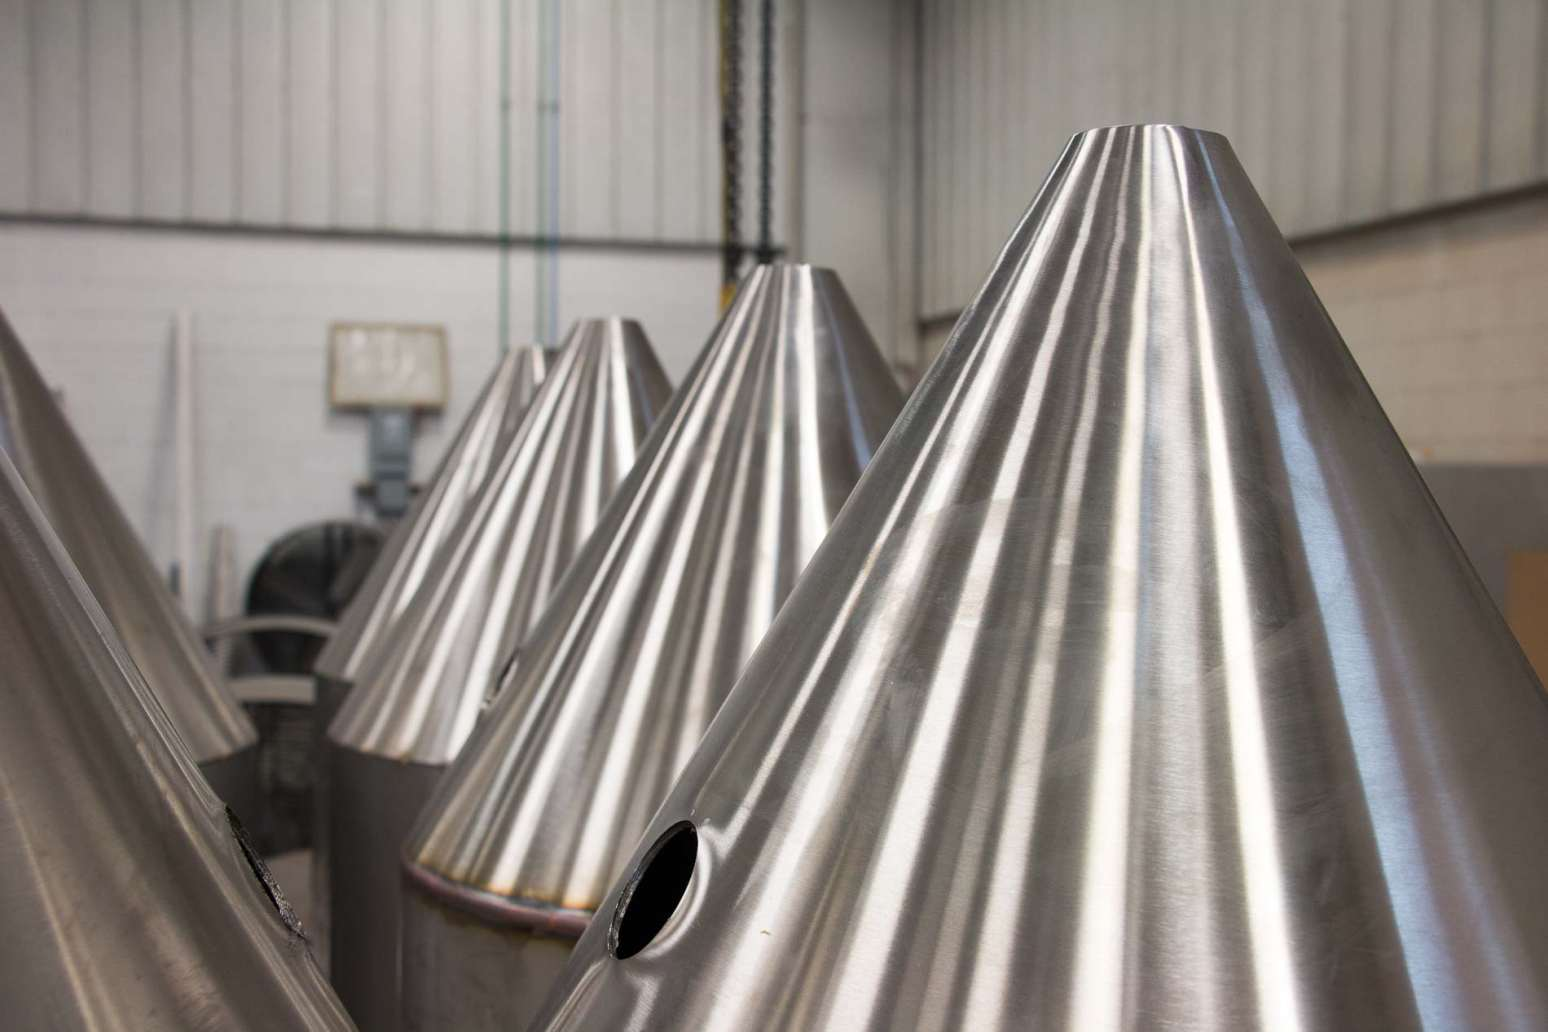 Dairy Industry Fabrication Is A Badger Sheet Metal Works